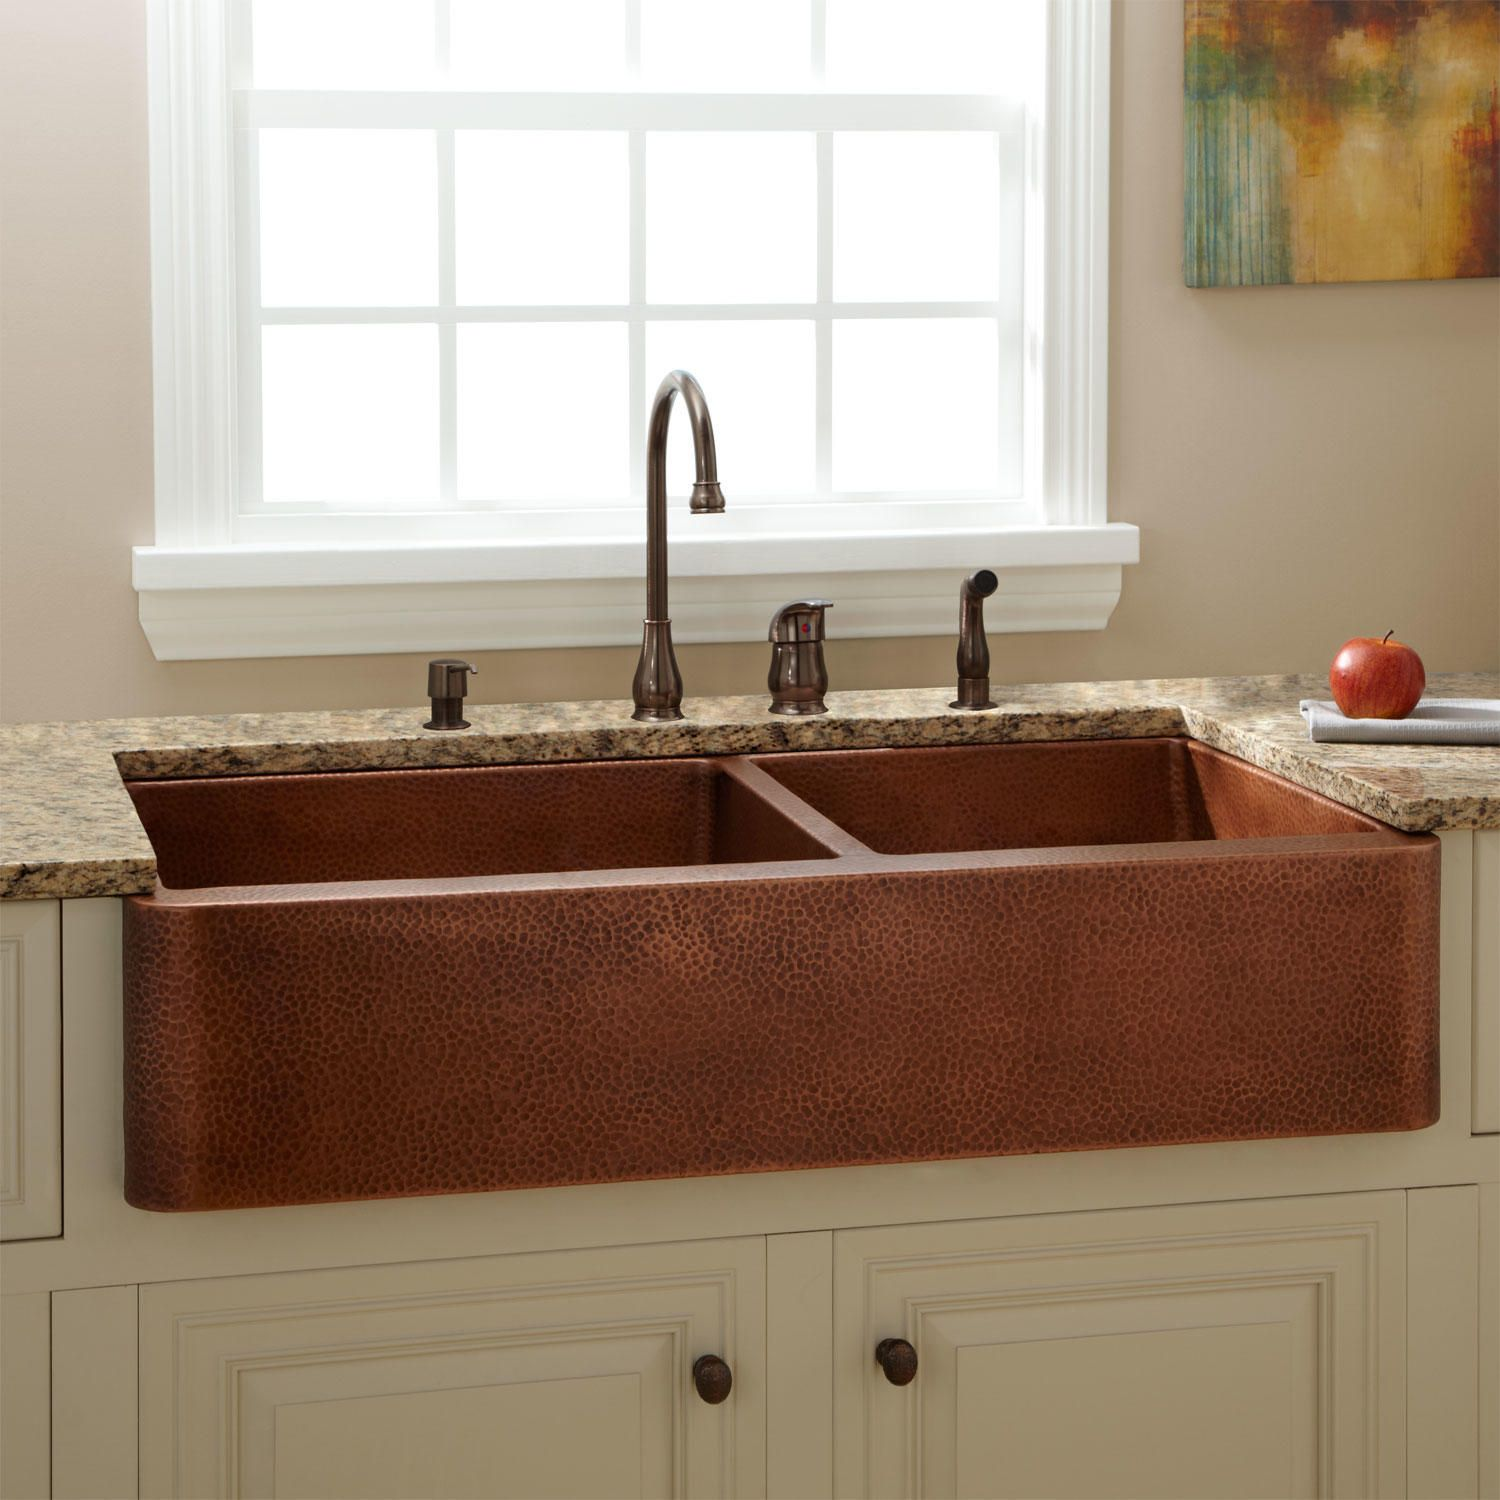 39 Fiona Double Bowl Hammered Copper Farmhouse Sink Kitchen